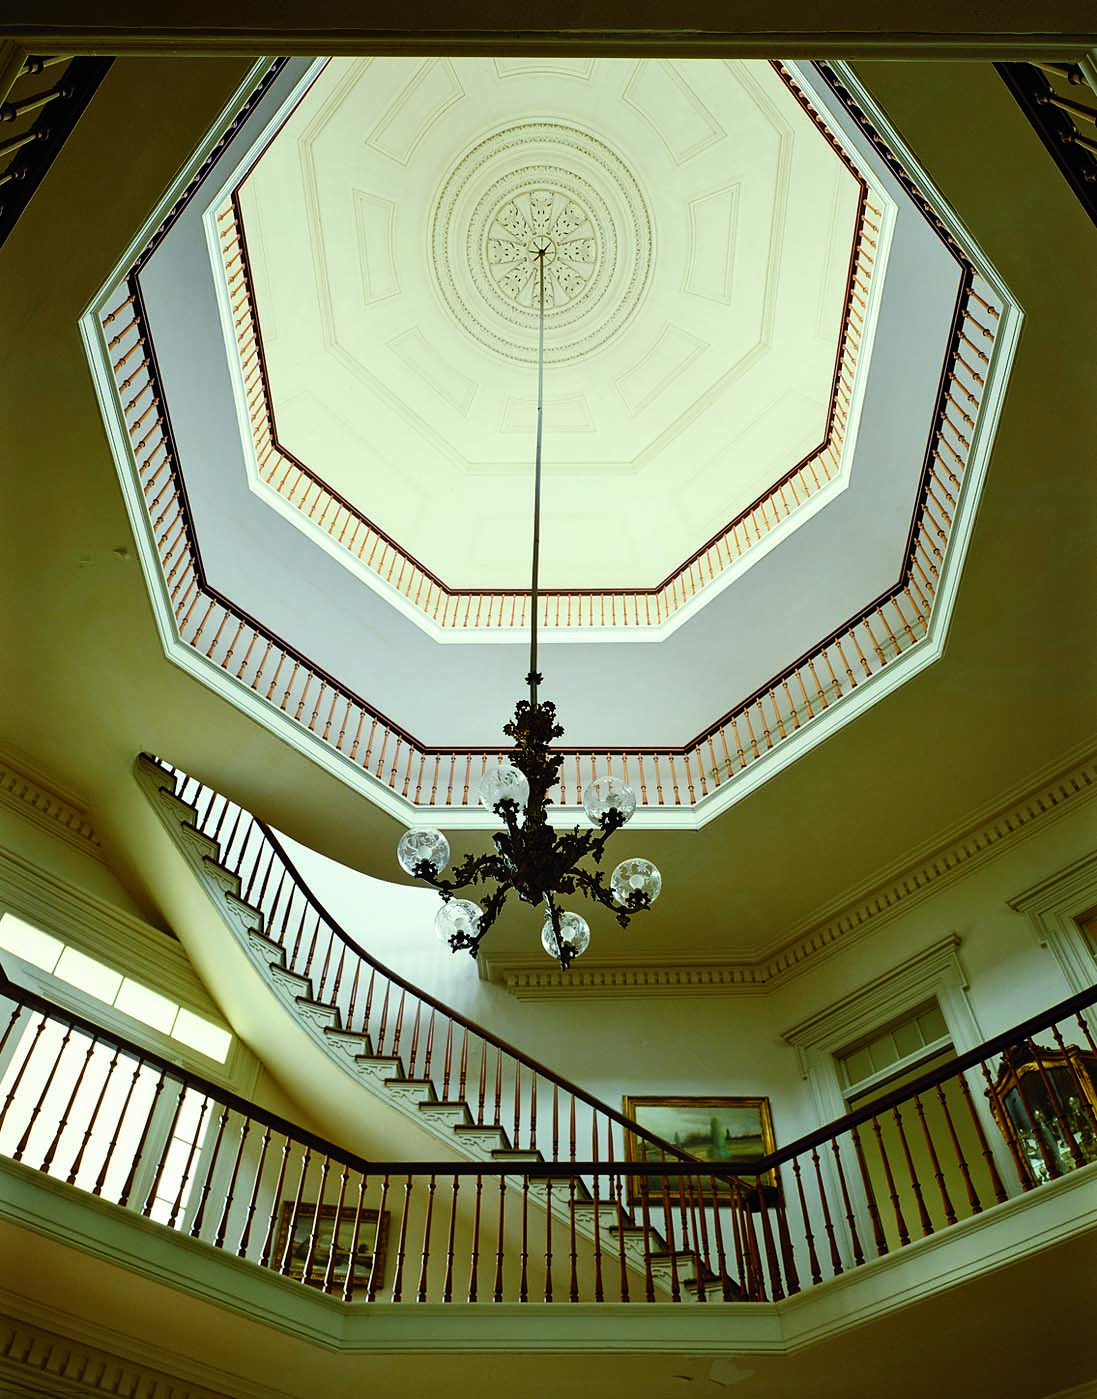 Befitting its four-story height, the Waverly Mansion in Columbus, Mississippi, features a grand medallion with a central rosette surrounded by concentric circles, framed by several octagons. (Photo: Paul Rocheleau)